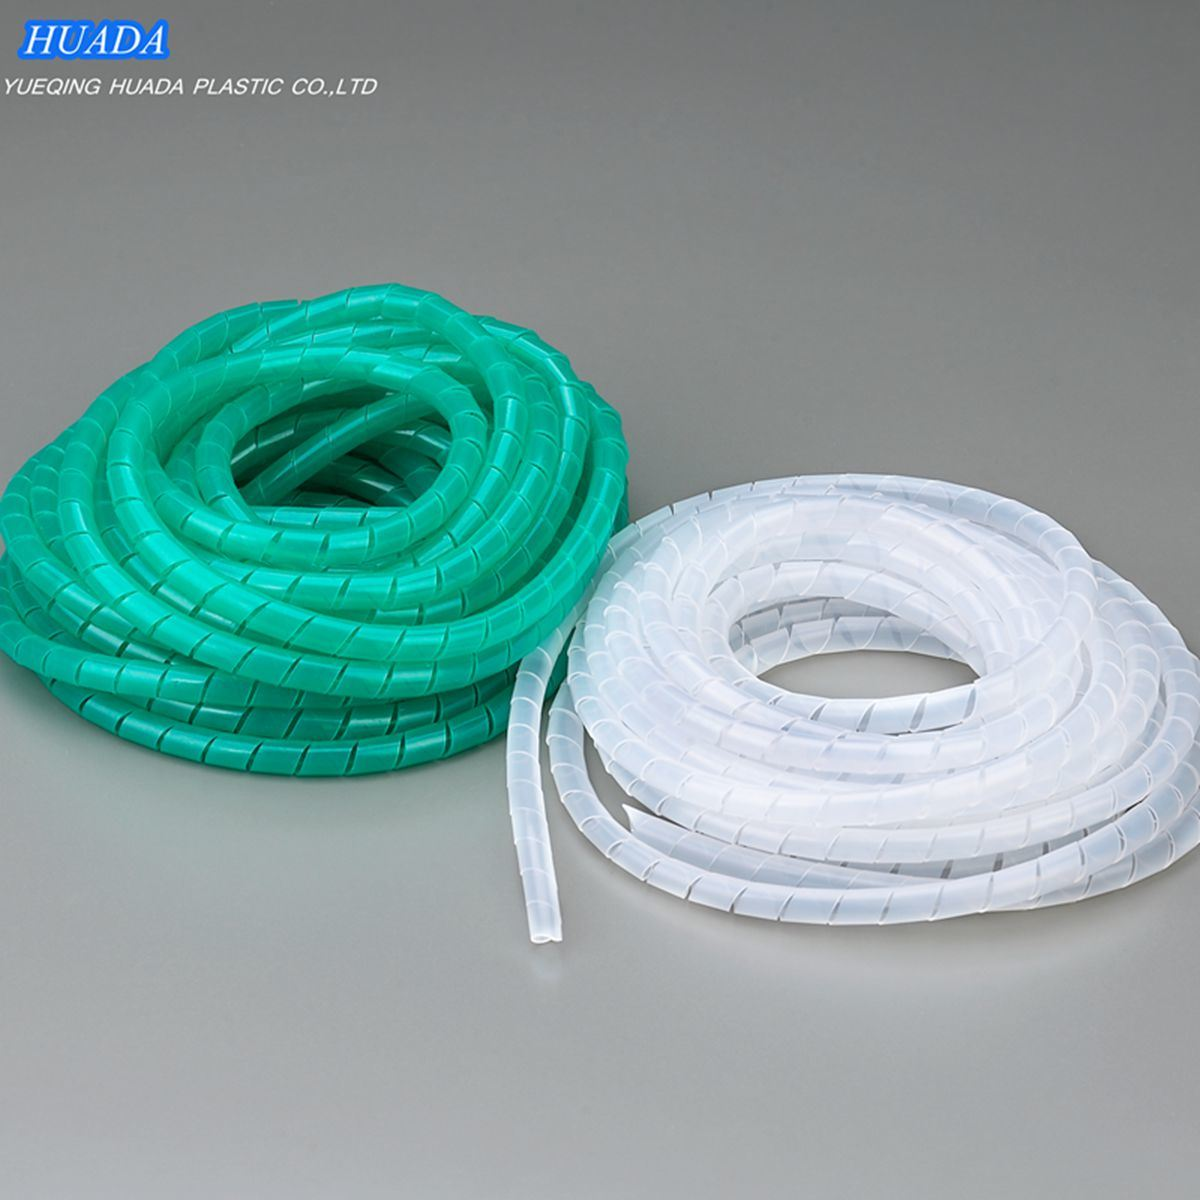 China Cable Wire Tidy Wrap Spiral Wrapping Band Organize - China ...